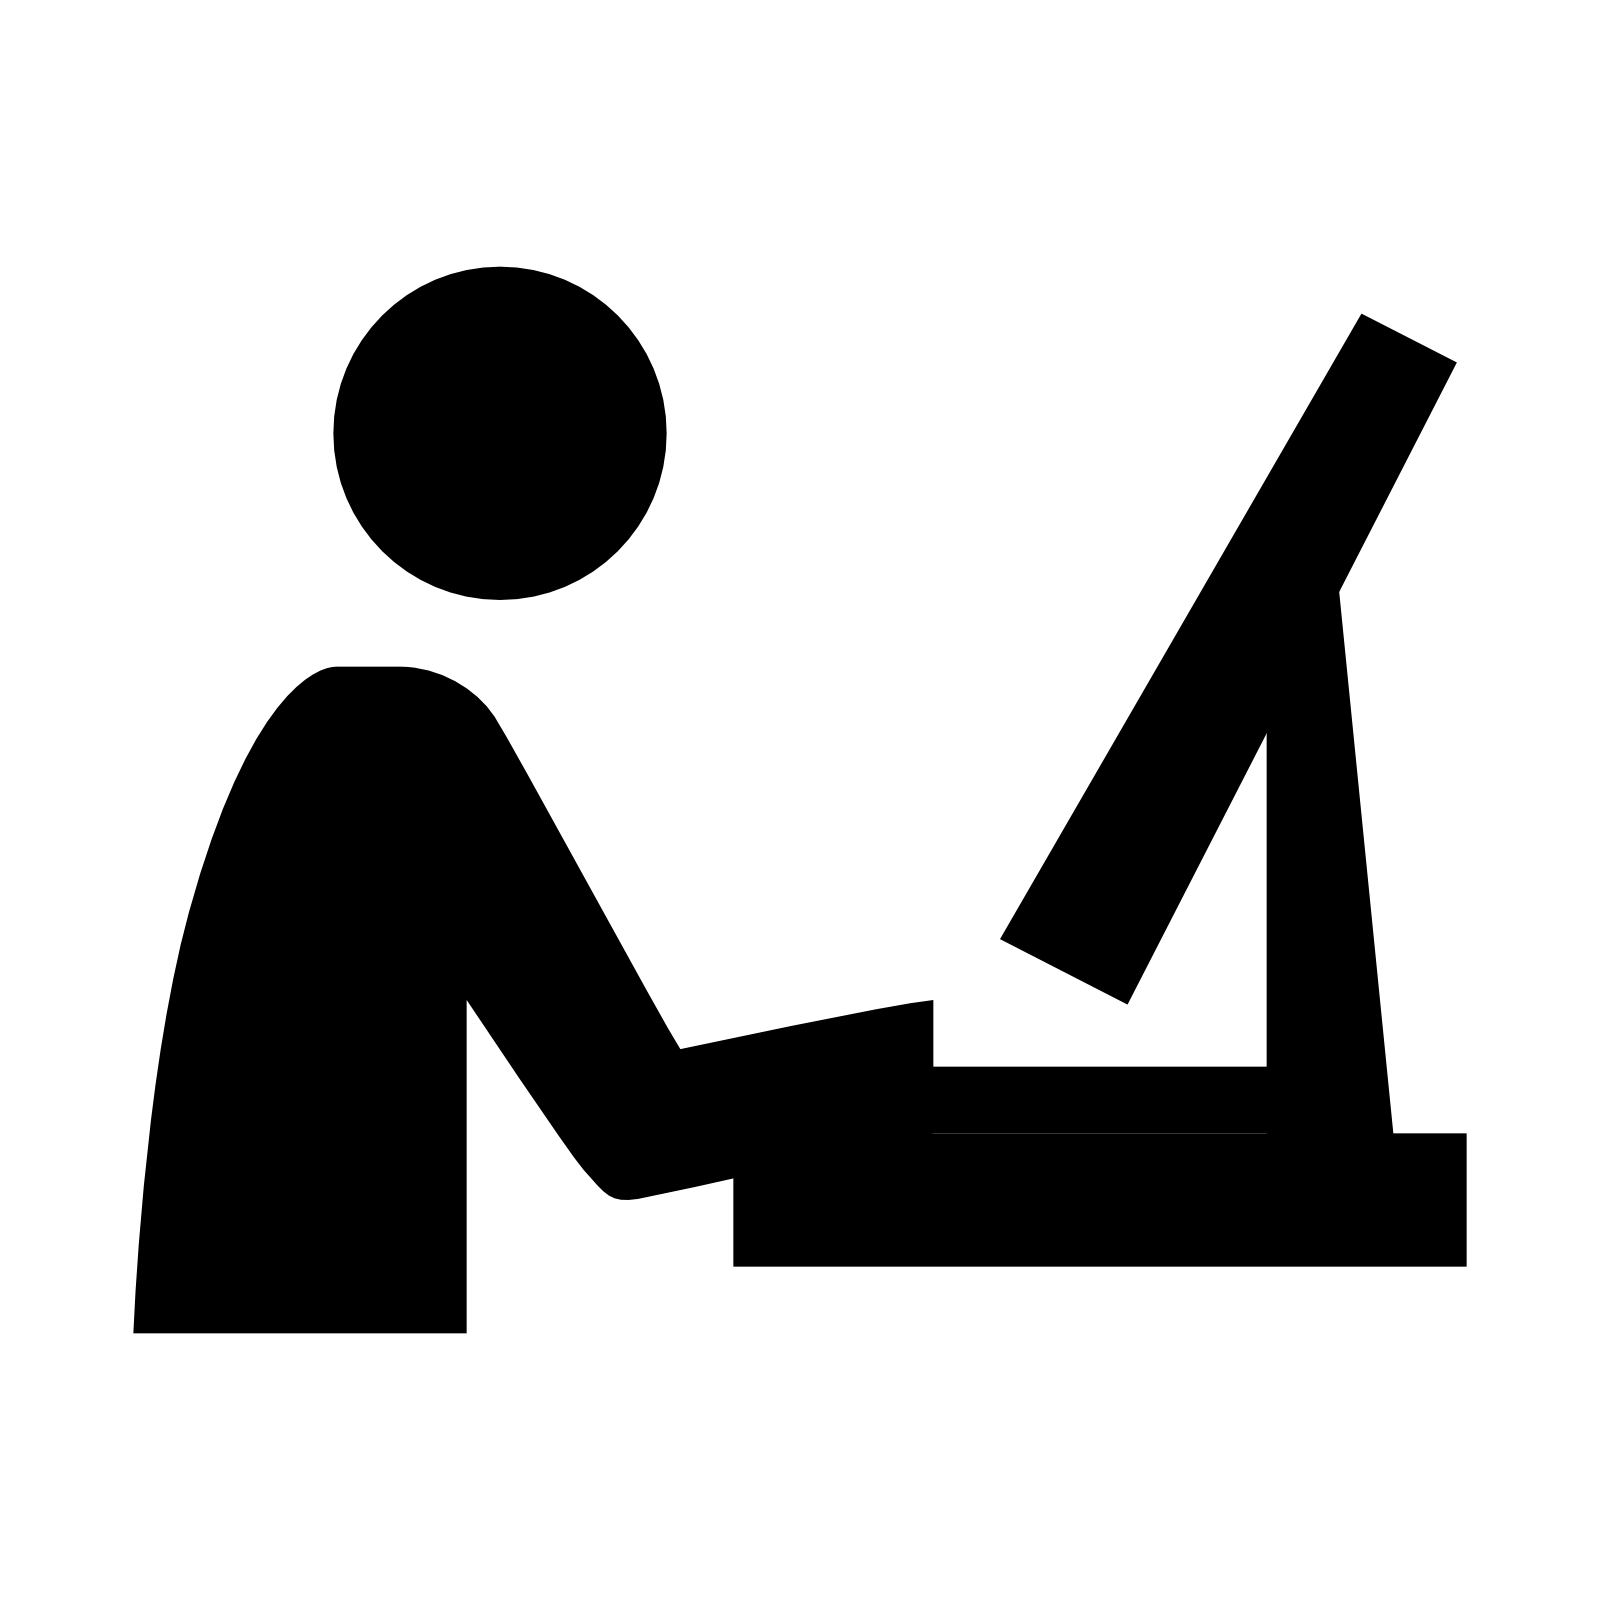 Black Computer Icon Png on a computer - ProPRc...